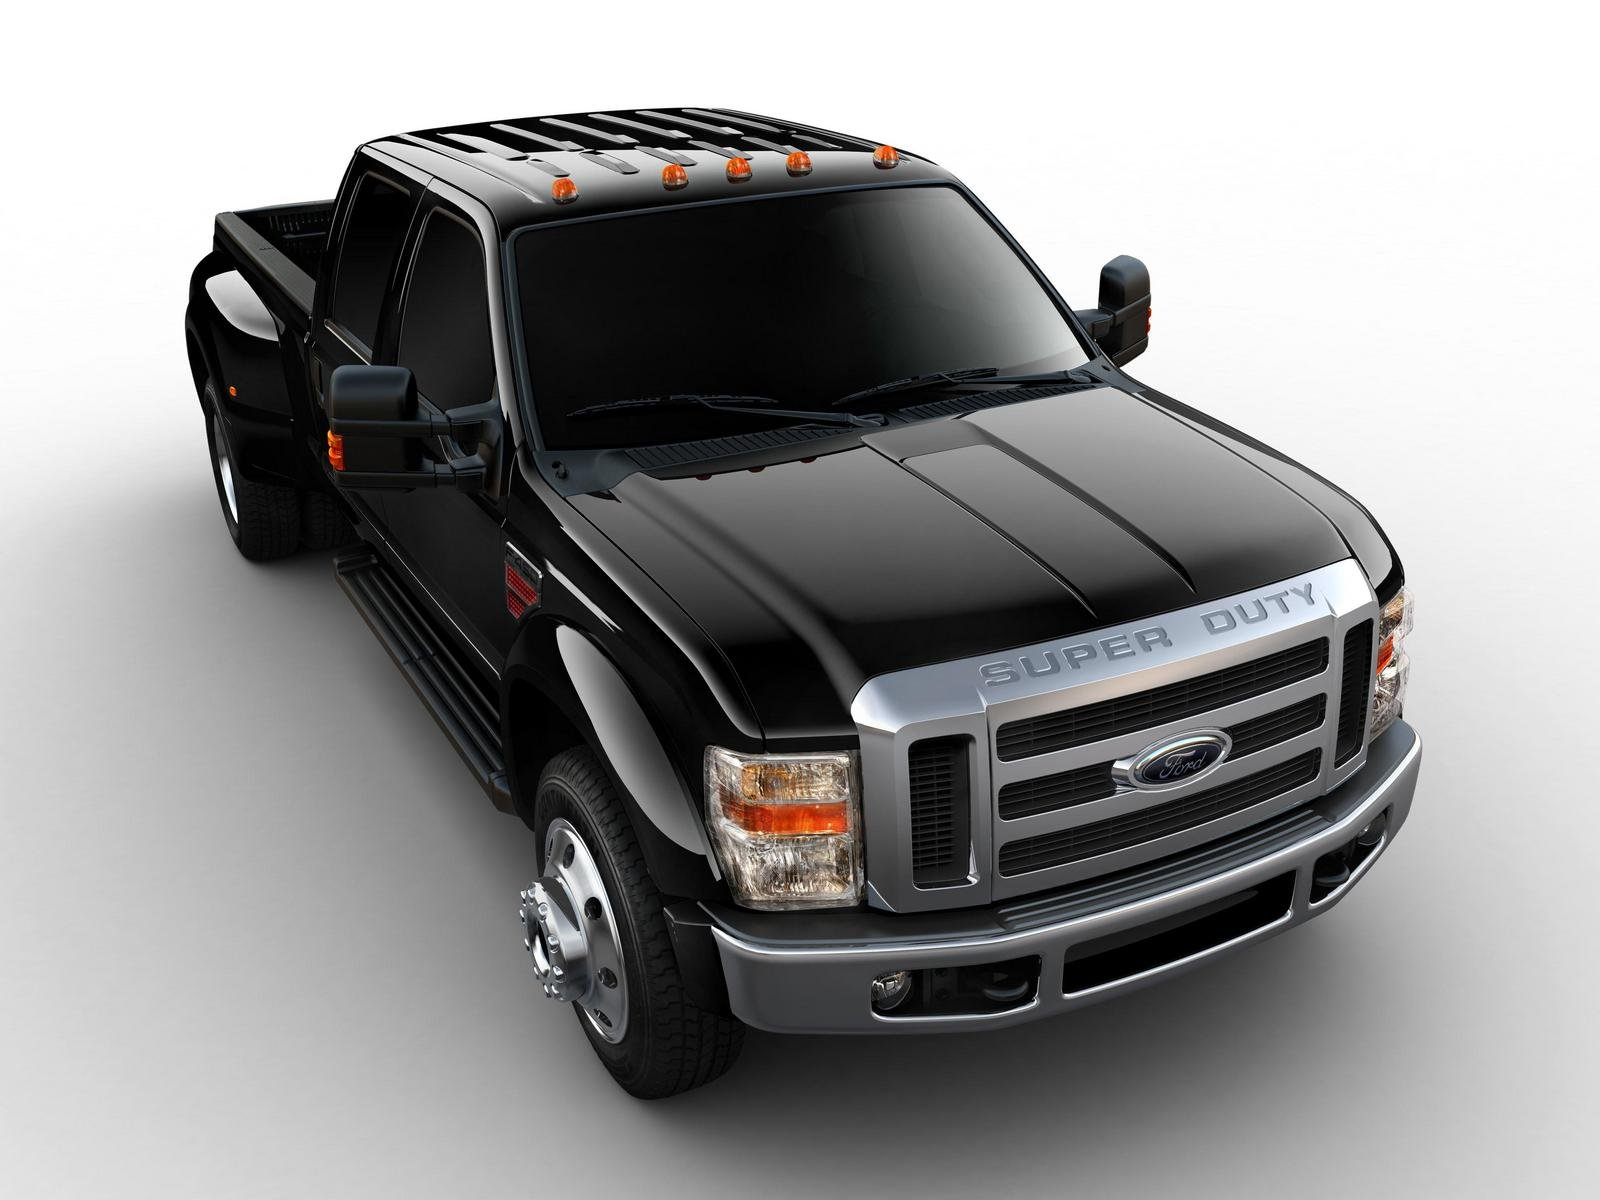 2008 ford f series super duty review top speed. Black Bedroom Furniture Sets. Home Design Ideas